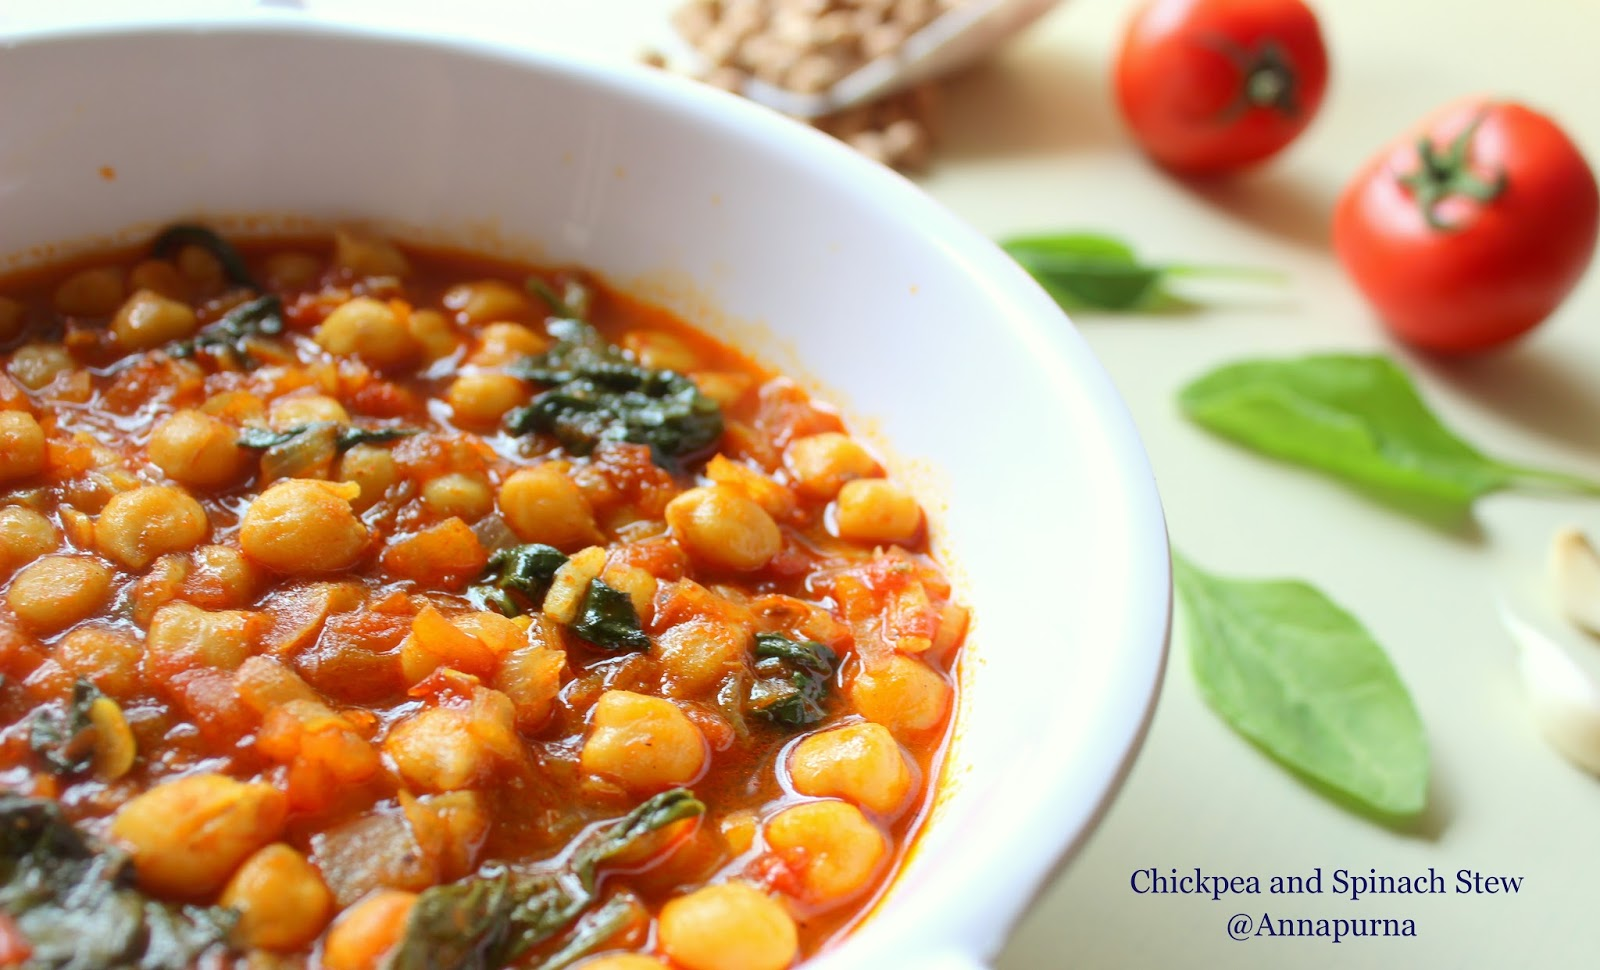 Annapurna: Spanish Chickpea and Spinach Stew With An ...